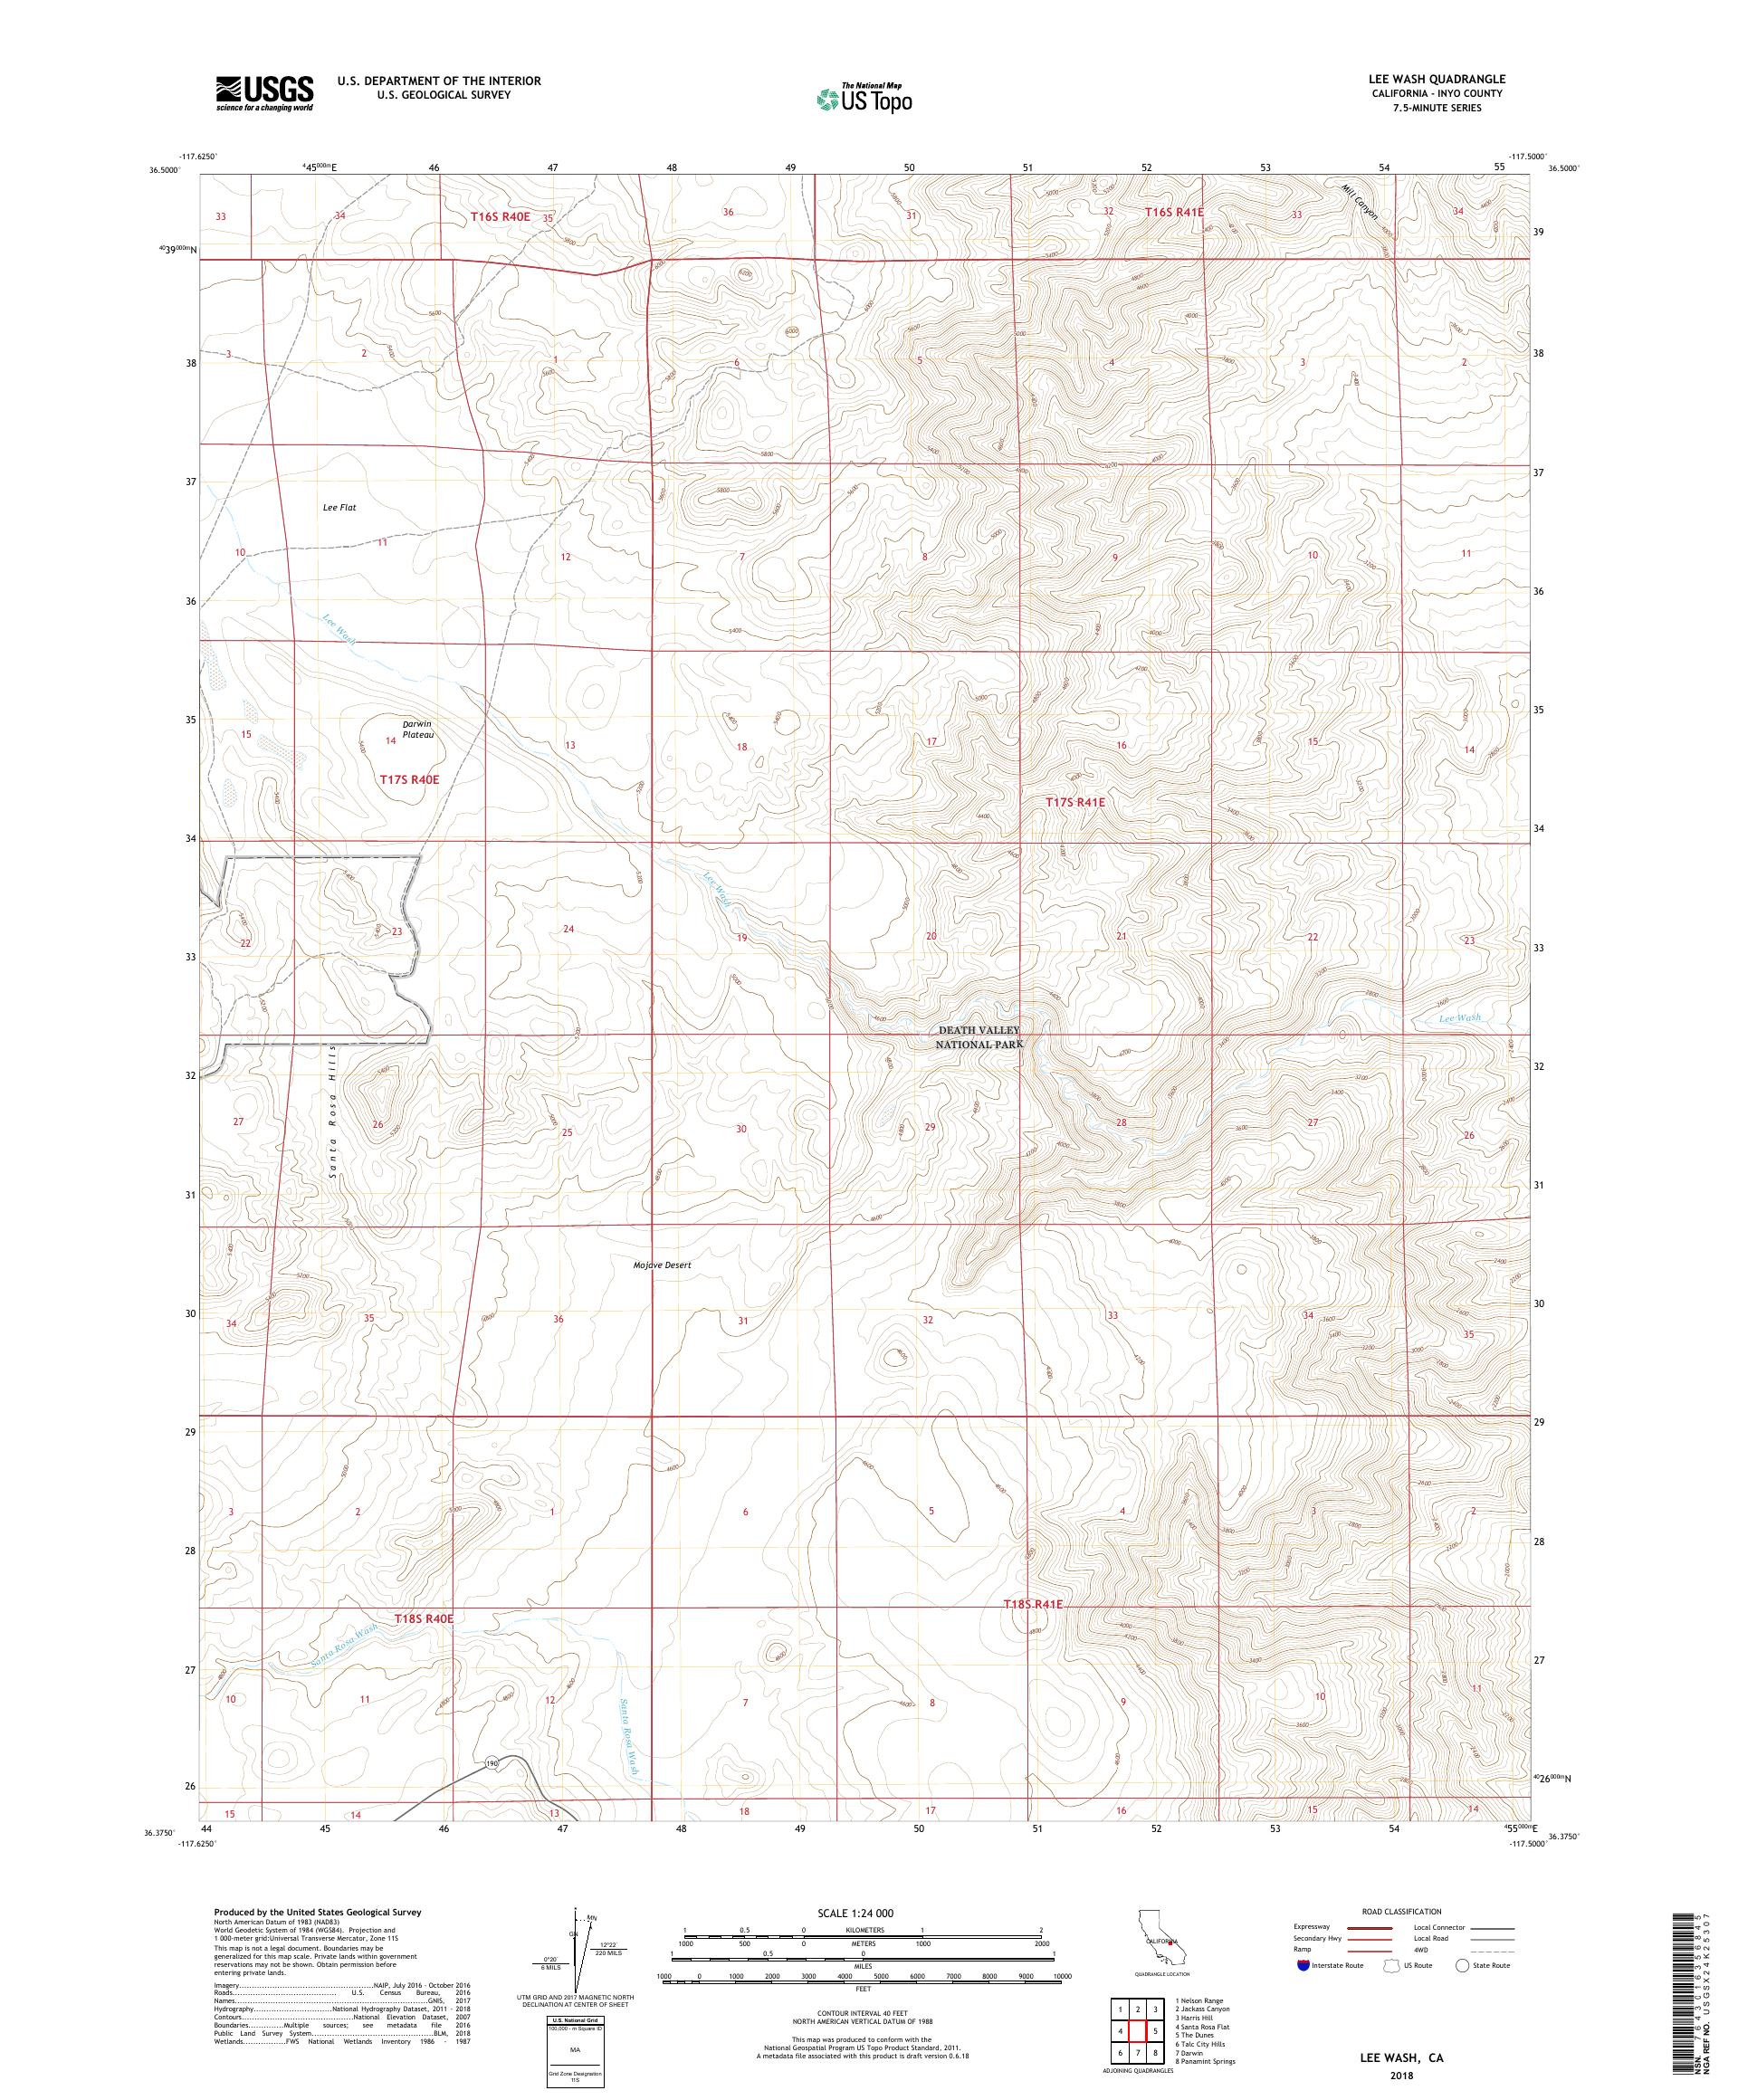 MyTopo Lee Wash, California USGS Quad Topo Map